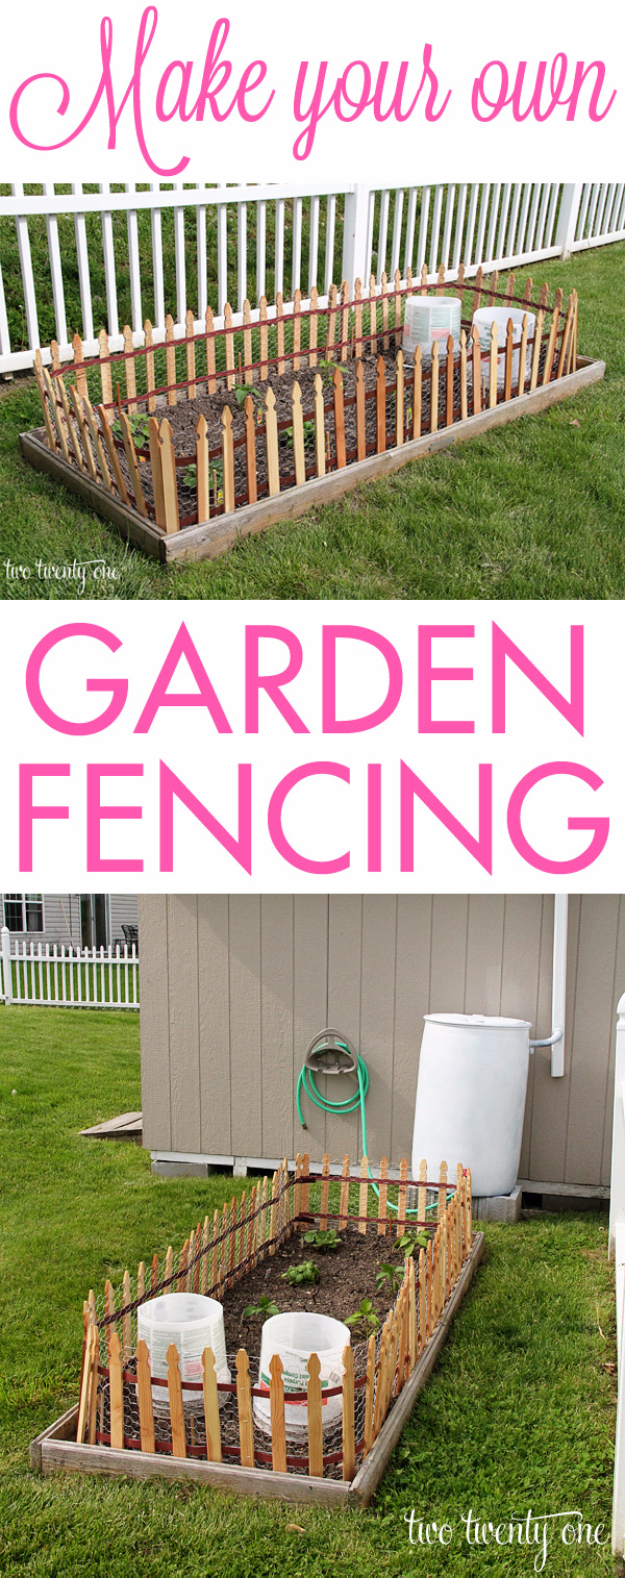 DIY Fences and Gates - Simple Garden Fence - How To Make Easy Fence and Gate Project for Backyard and Home - Step by Step Tutorial and Ideas for Painting, Updating and Making Fences and DIY Gate - Cool Outdoors and Yard Projects